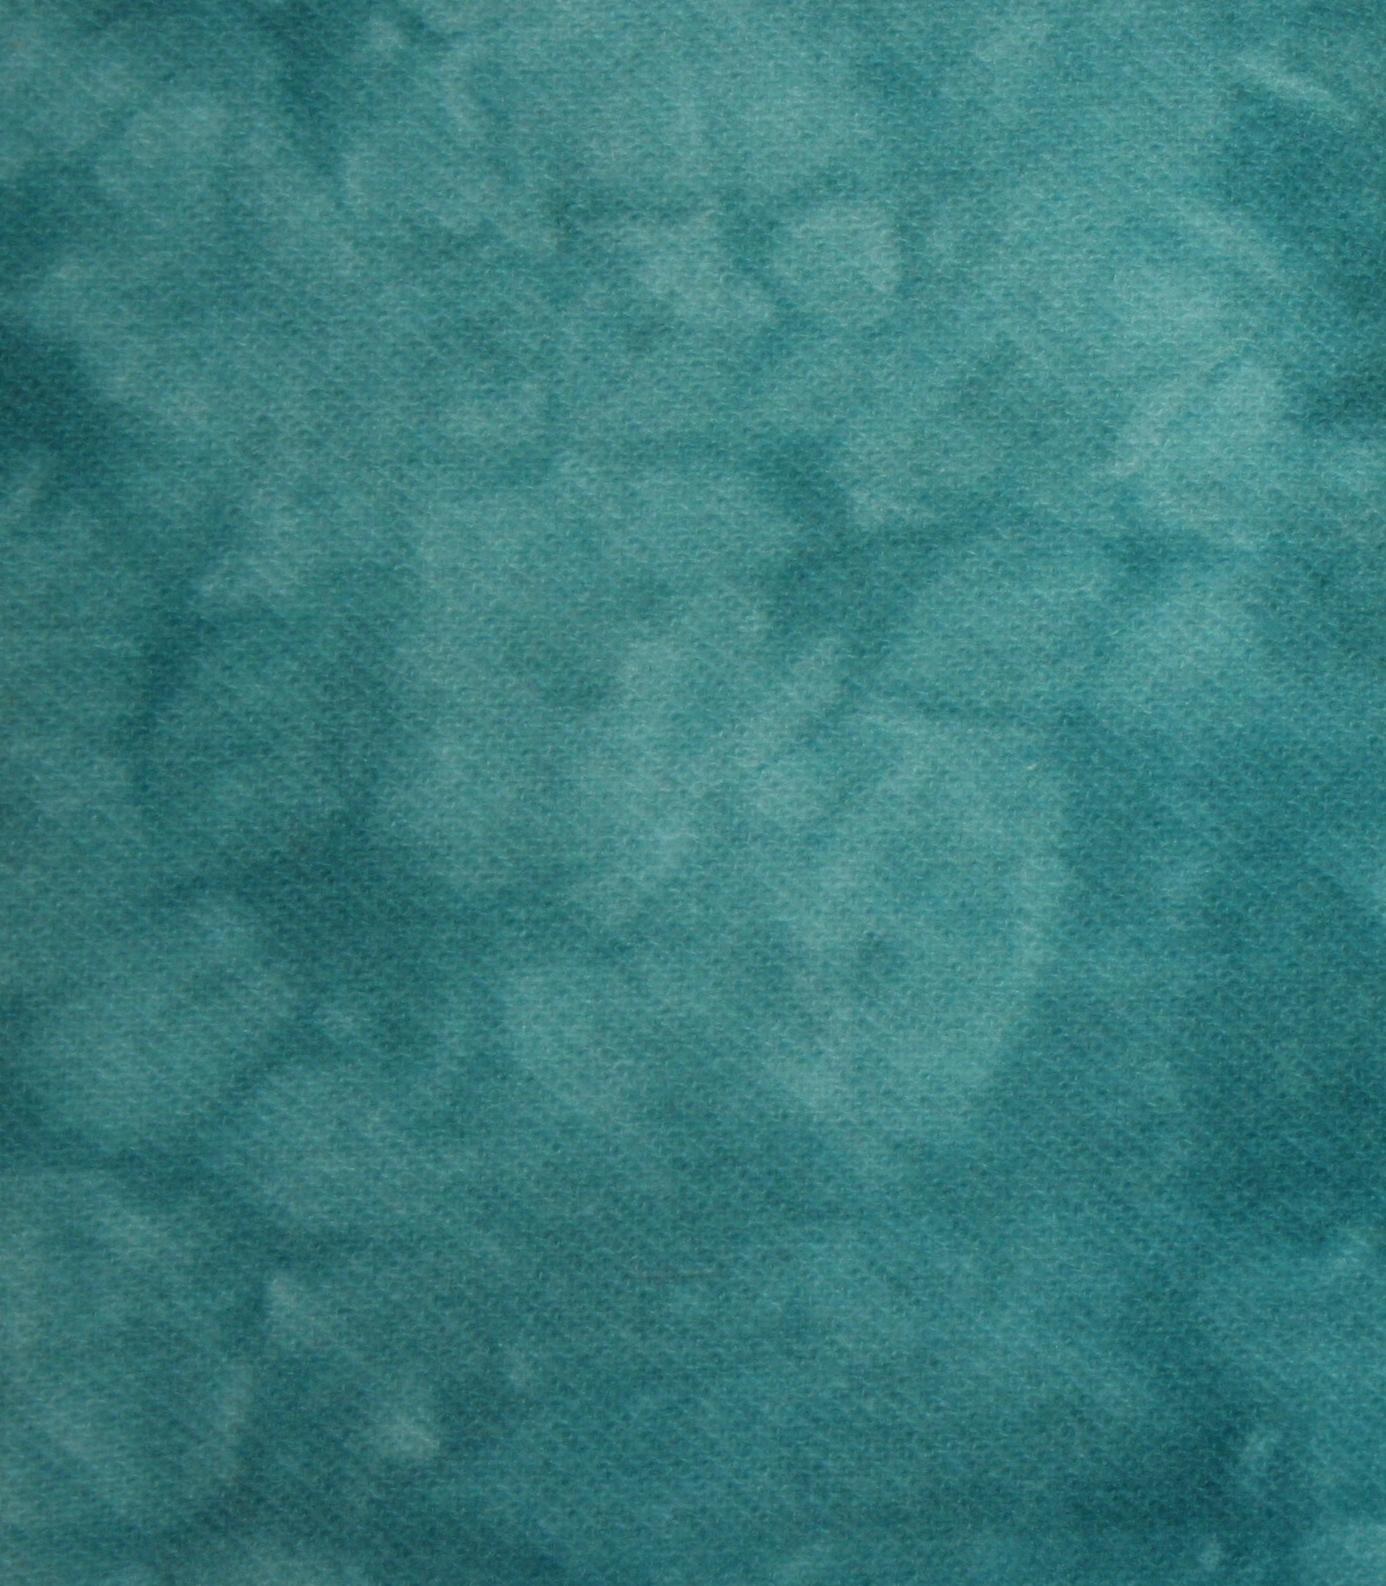 Caribbean Blue Artisan Hand Dyed 100% Wool Part of the Totally Teal Collection